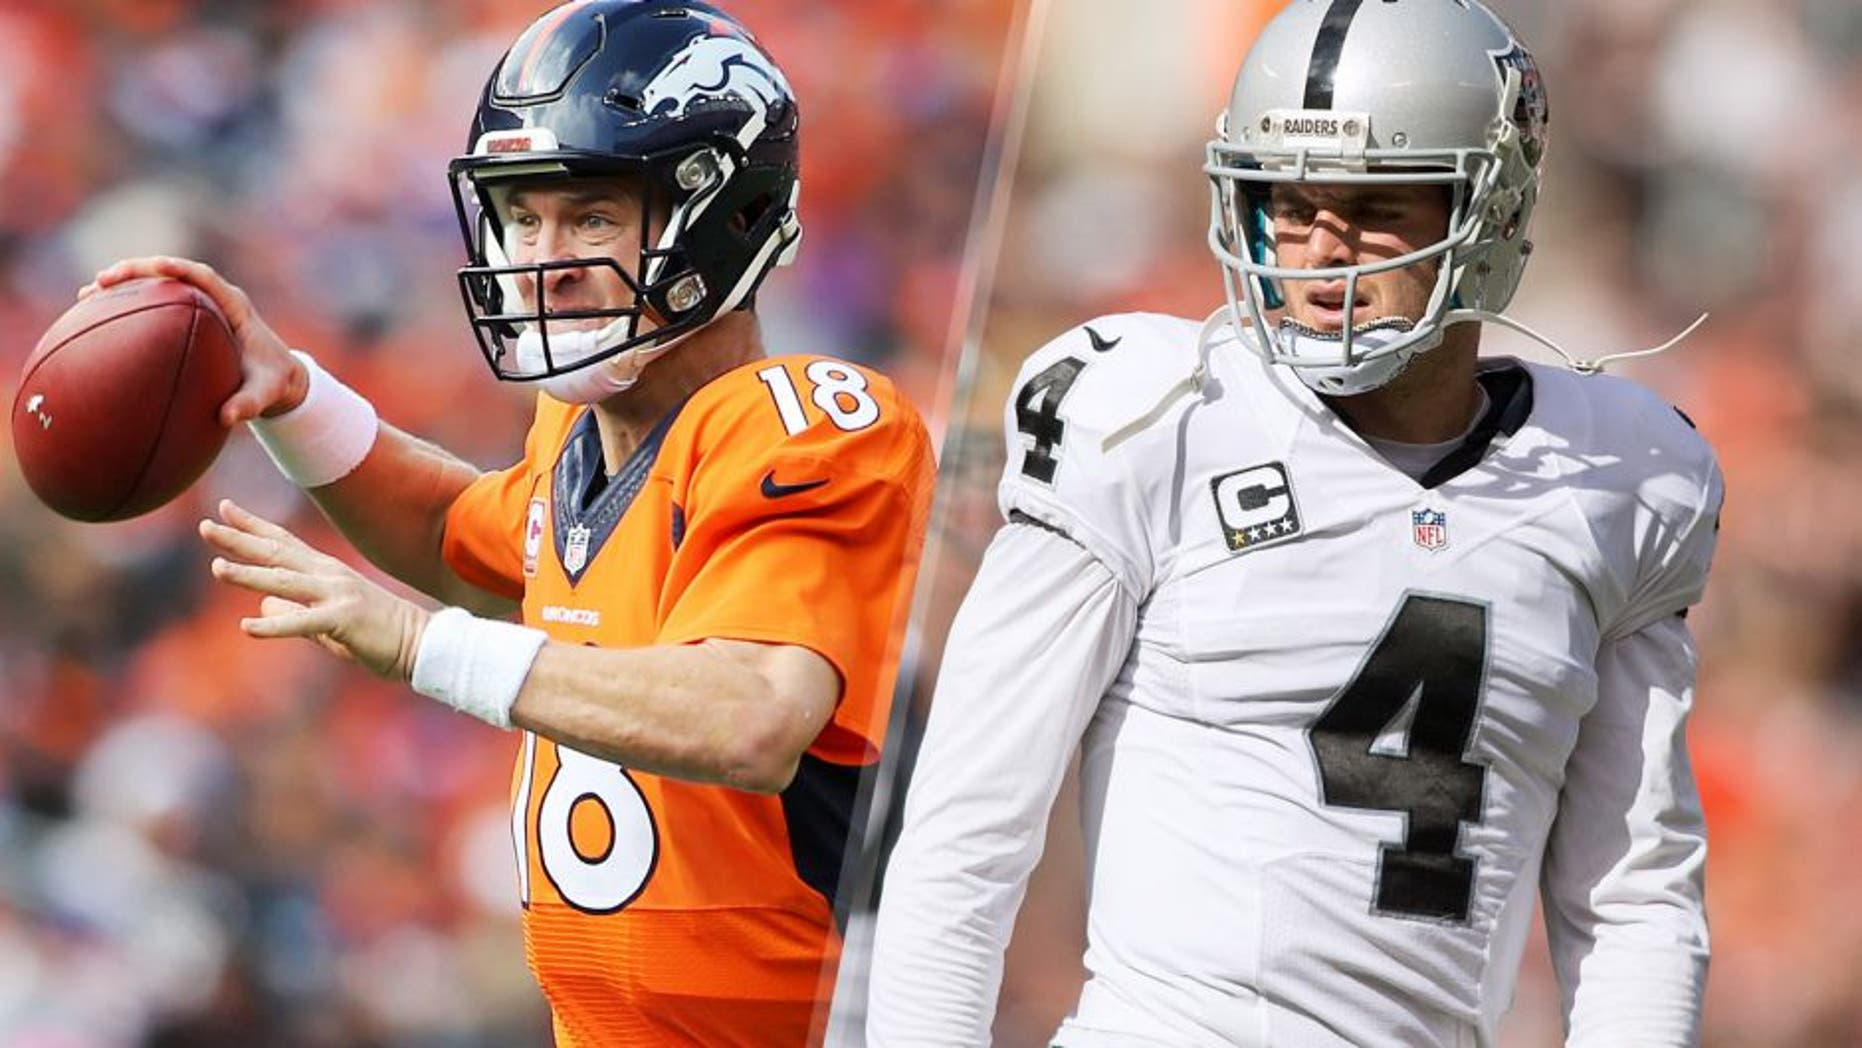 Oct 4, 2015; Denver, CO, USA; Denver Broncos quarterback Peyton Manning (18) looks to pass the ball during the first half against the Minnesota Vikings at Sports Authority Field at Mile High. Mandatory Credit: Chris Humphreys-USA TODAY Sports Sep 27, 2015; Cleveland, OH, USA; Oakland Raiders quarterback Derek Carr (4) during the third quarter against the Cleveland Browns at FirstEnergy Stadium. Mandatory Credit: Scott R. Galvin-USA TODAY Sports